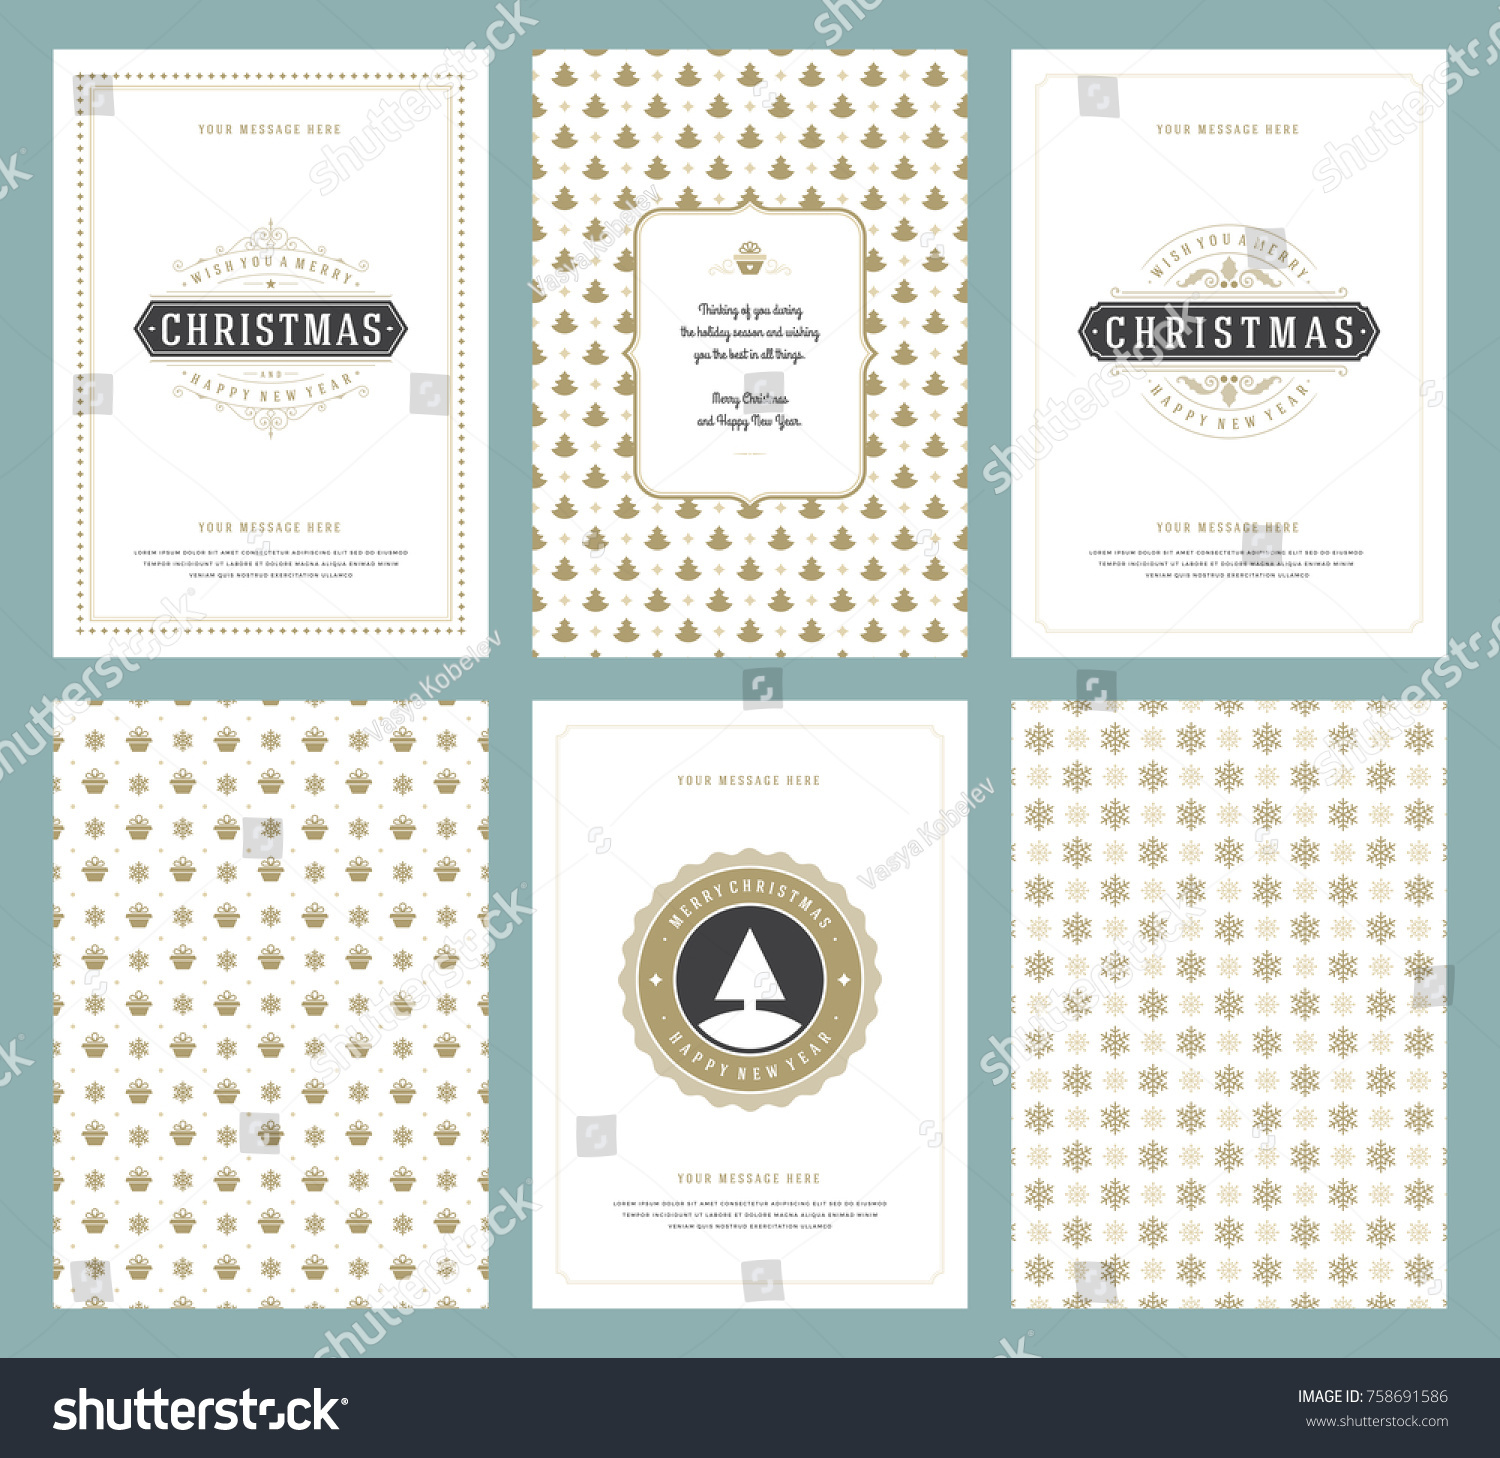 Merry Christmas Greeting Cards Templates Golden Stock Vector